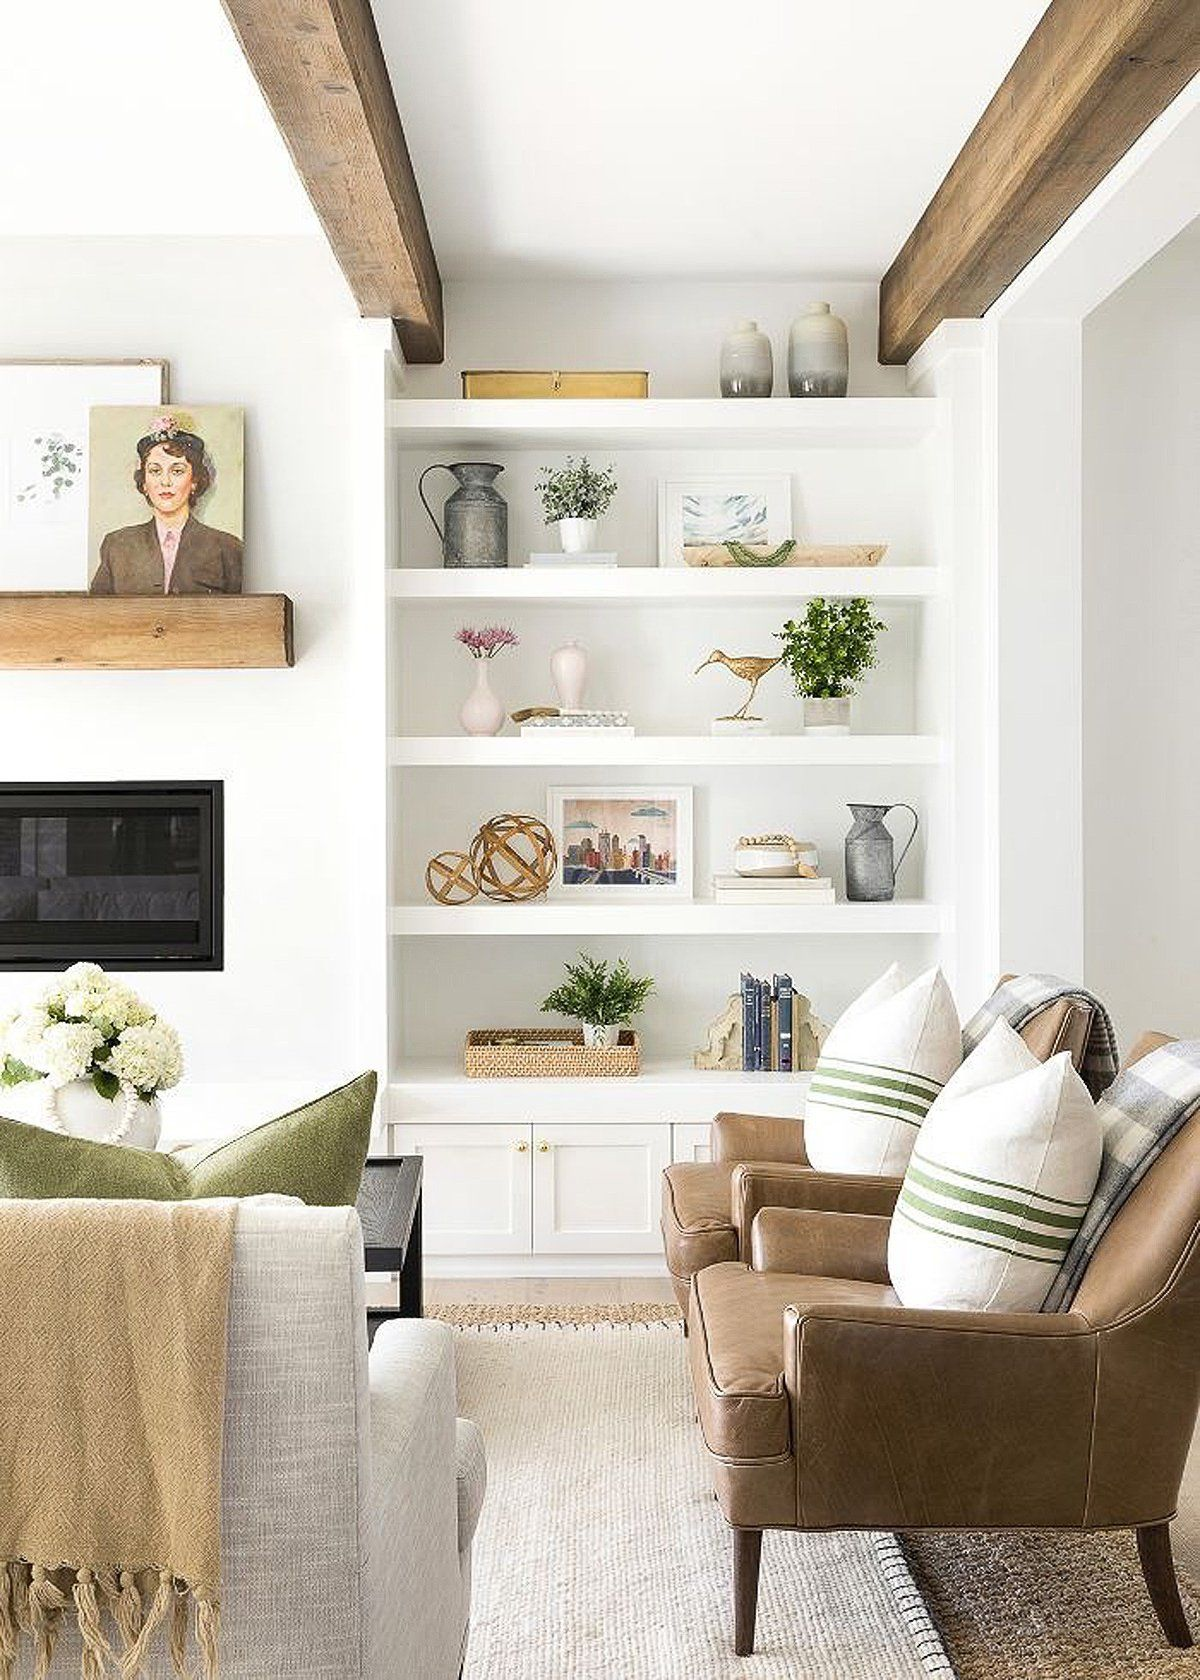 Mix and Match Shelf Styling Home Decor   How to Style Built-in Bookshelves   Layering Height and Size on Shelves   Styling Bookshelves: The Ultimate How-To Guide   Charleston Blonde  #shelfstyling #stylingbookshelves #bookshelfinspo #shelfie #interiordesign #homedecor